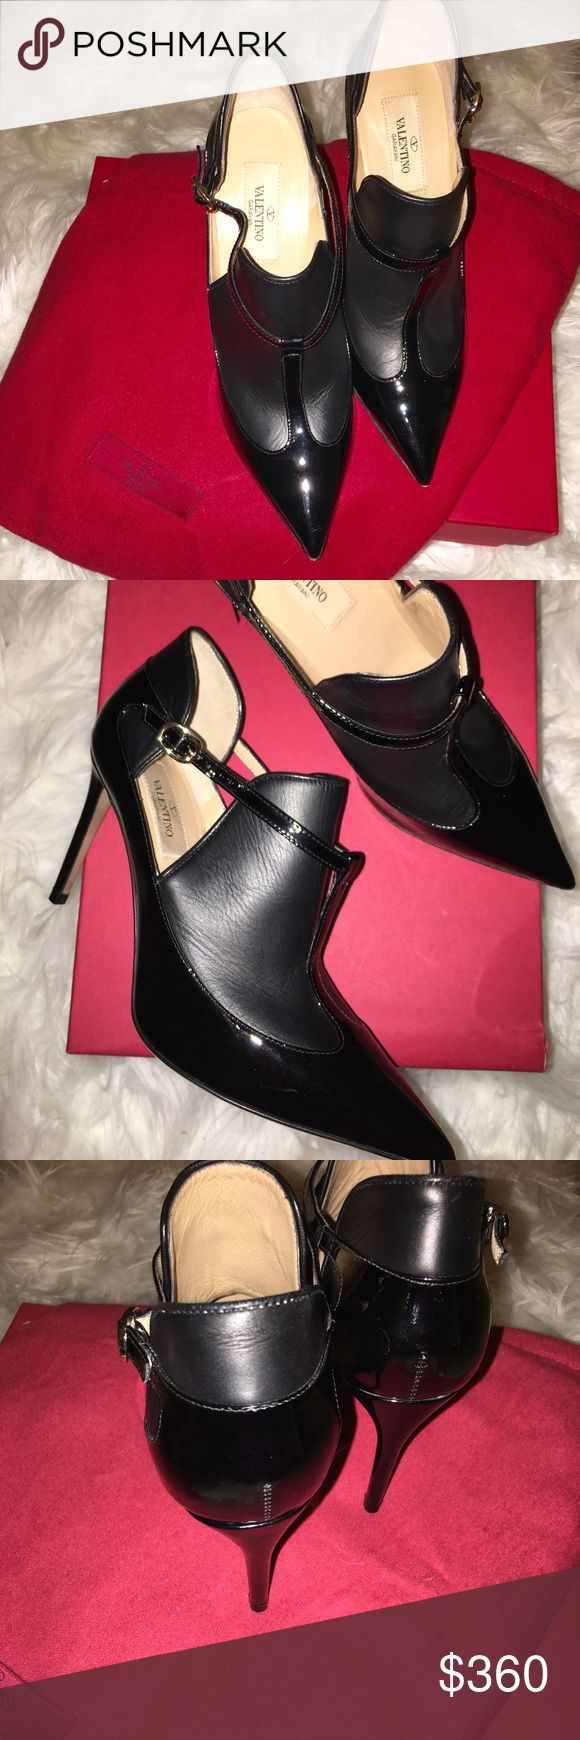 Valentino Black Pumps Used one time. Purchased at the Valentino Outlet Palm Desert. Comes with original box and dust bag. Valentino Shoes Heels